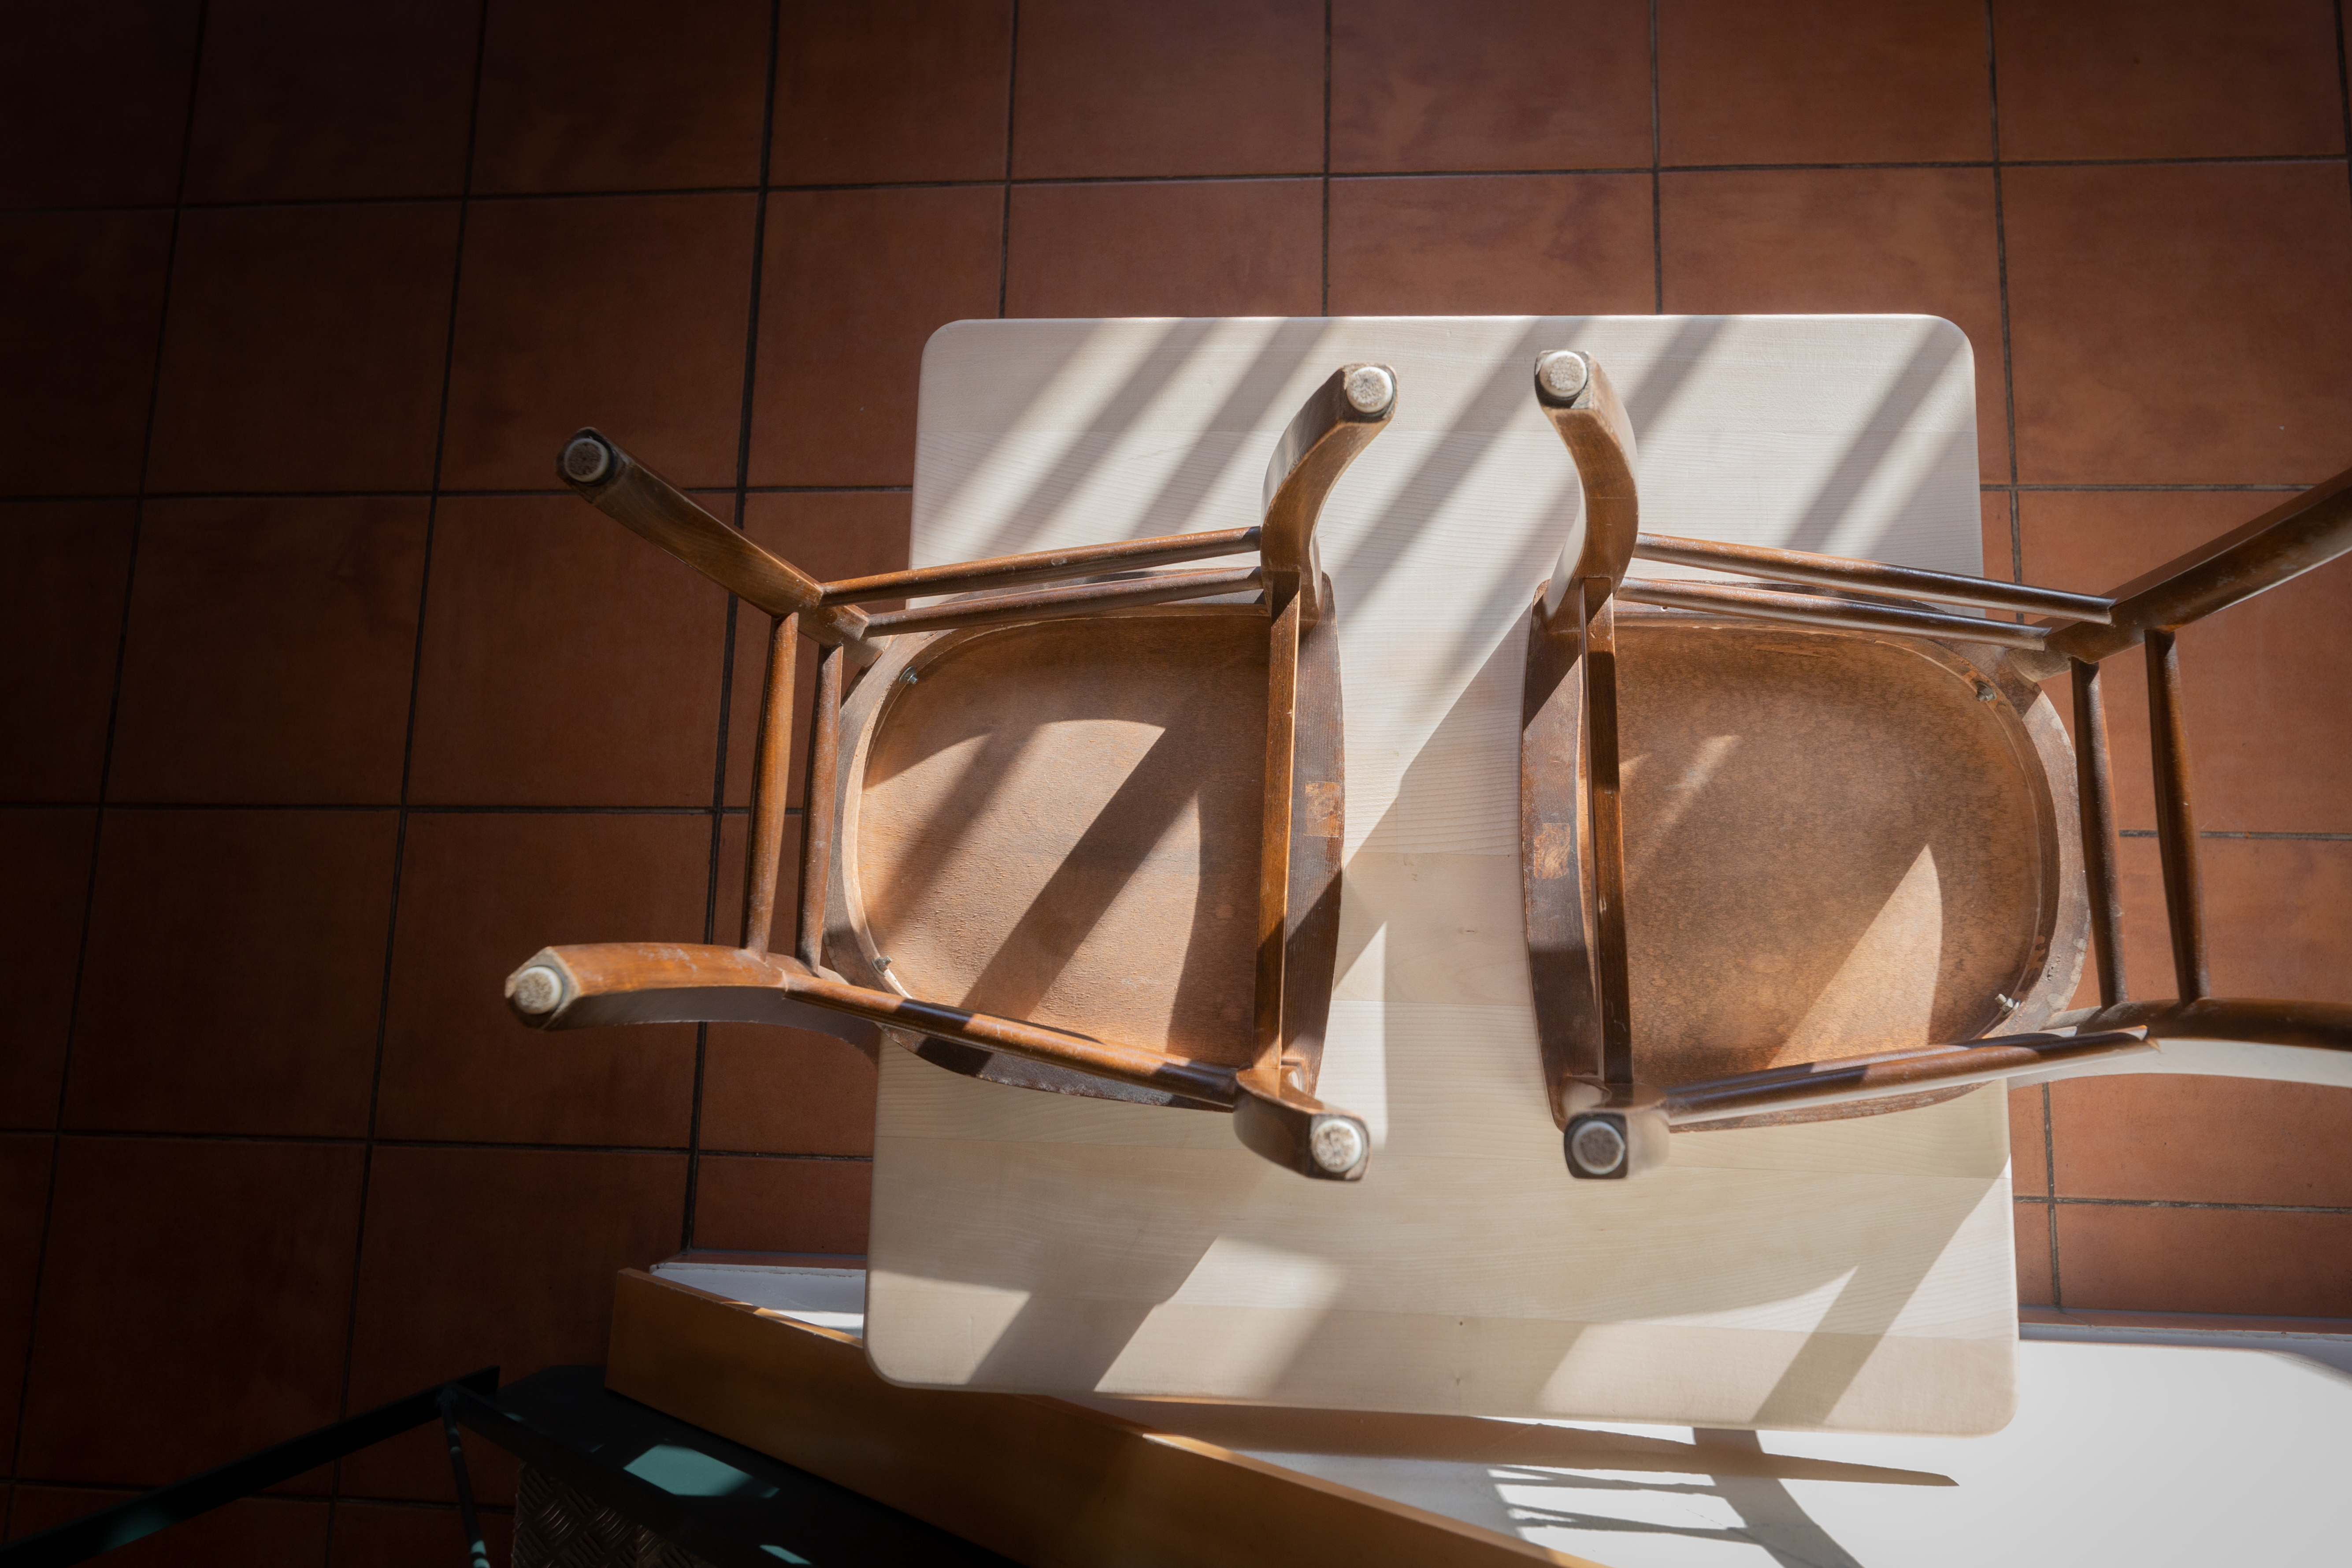 An empty restaurant table with two chairs overturned